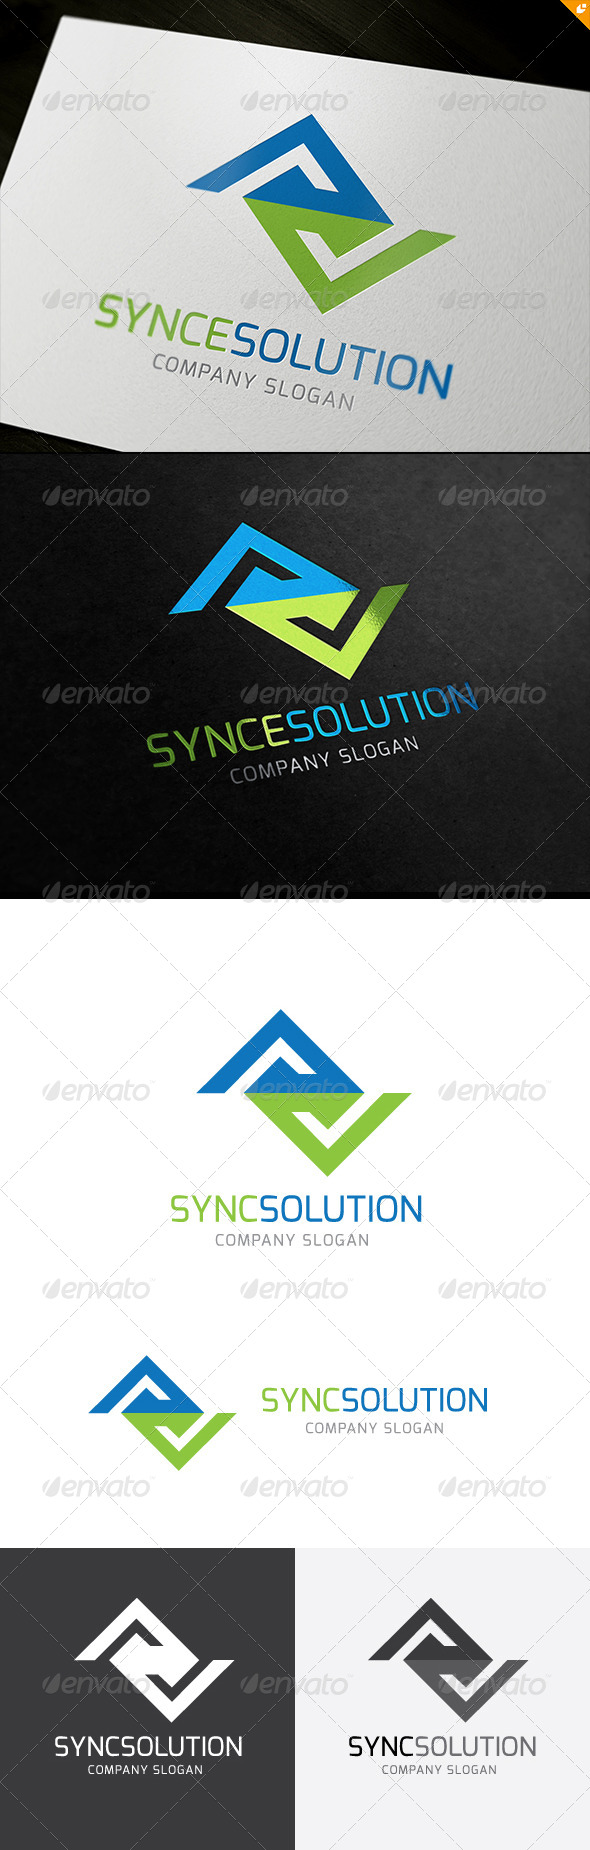 GraphicRiver Synce Solution Logo 5896457